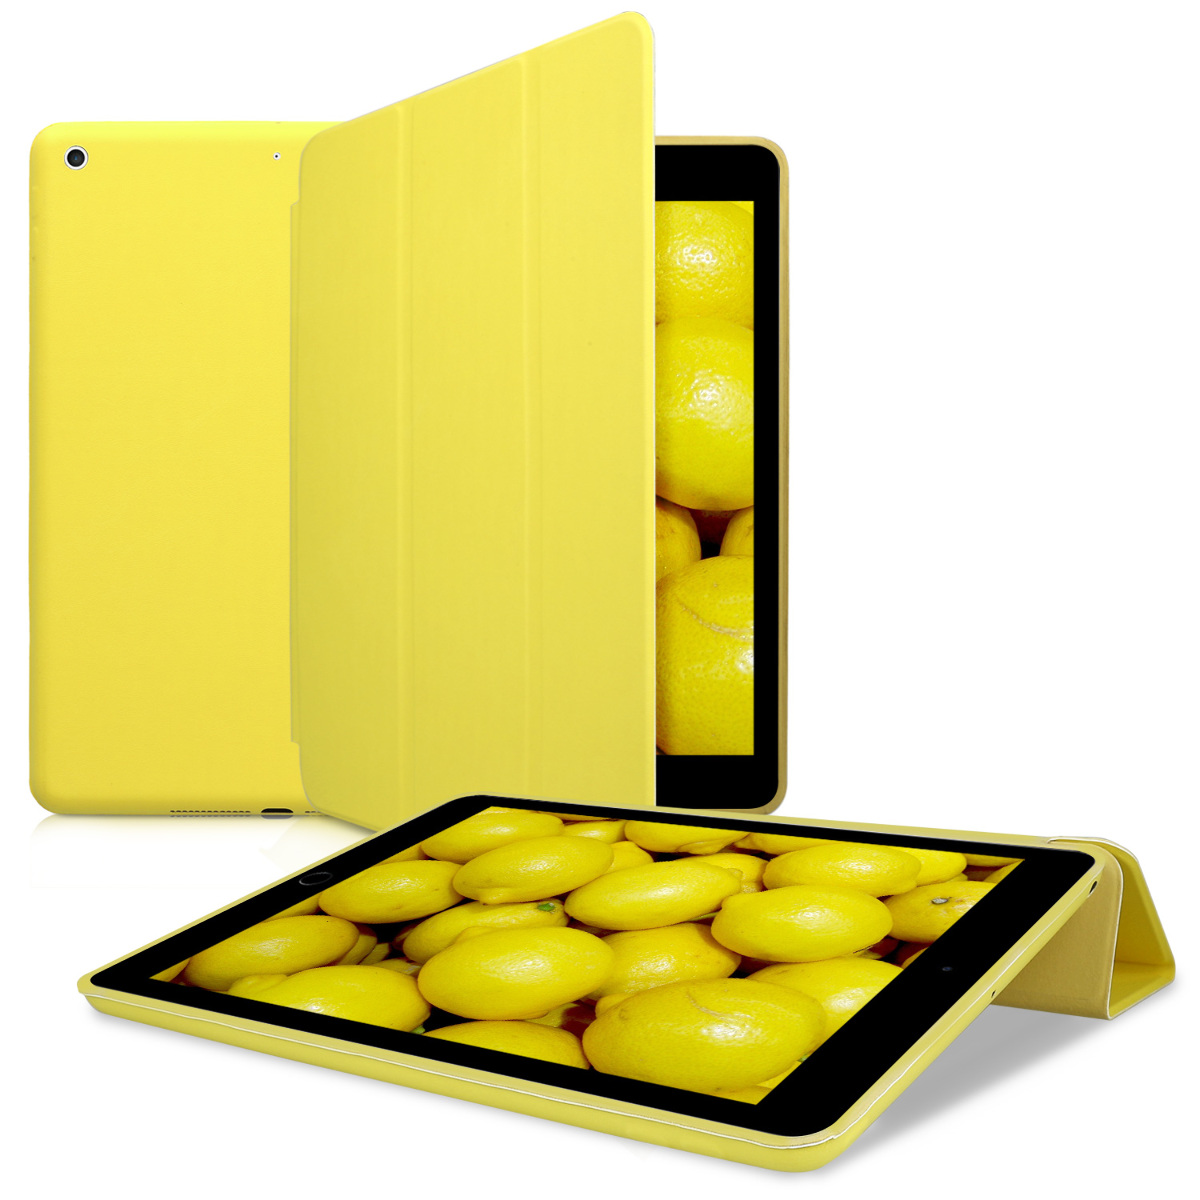 KW Θήκη Apple iPad 9.7 2017 / 2018 - PU Leather Smart Cover Protective Tablet Case with Stand - Yellow (41778.06)